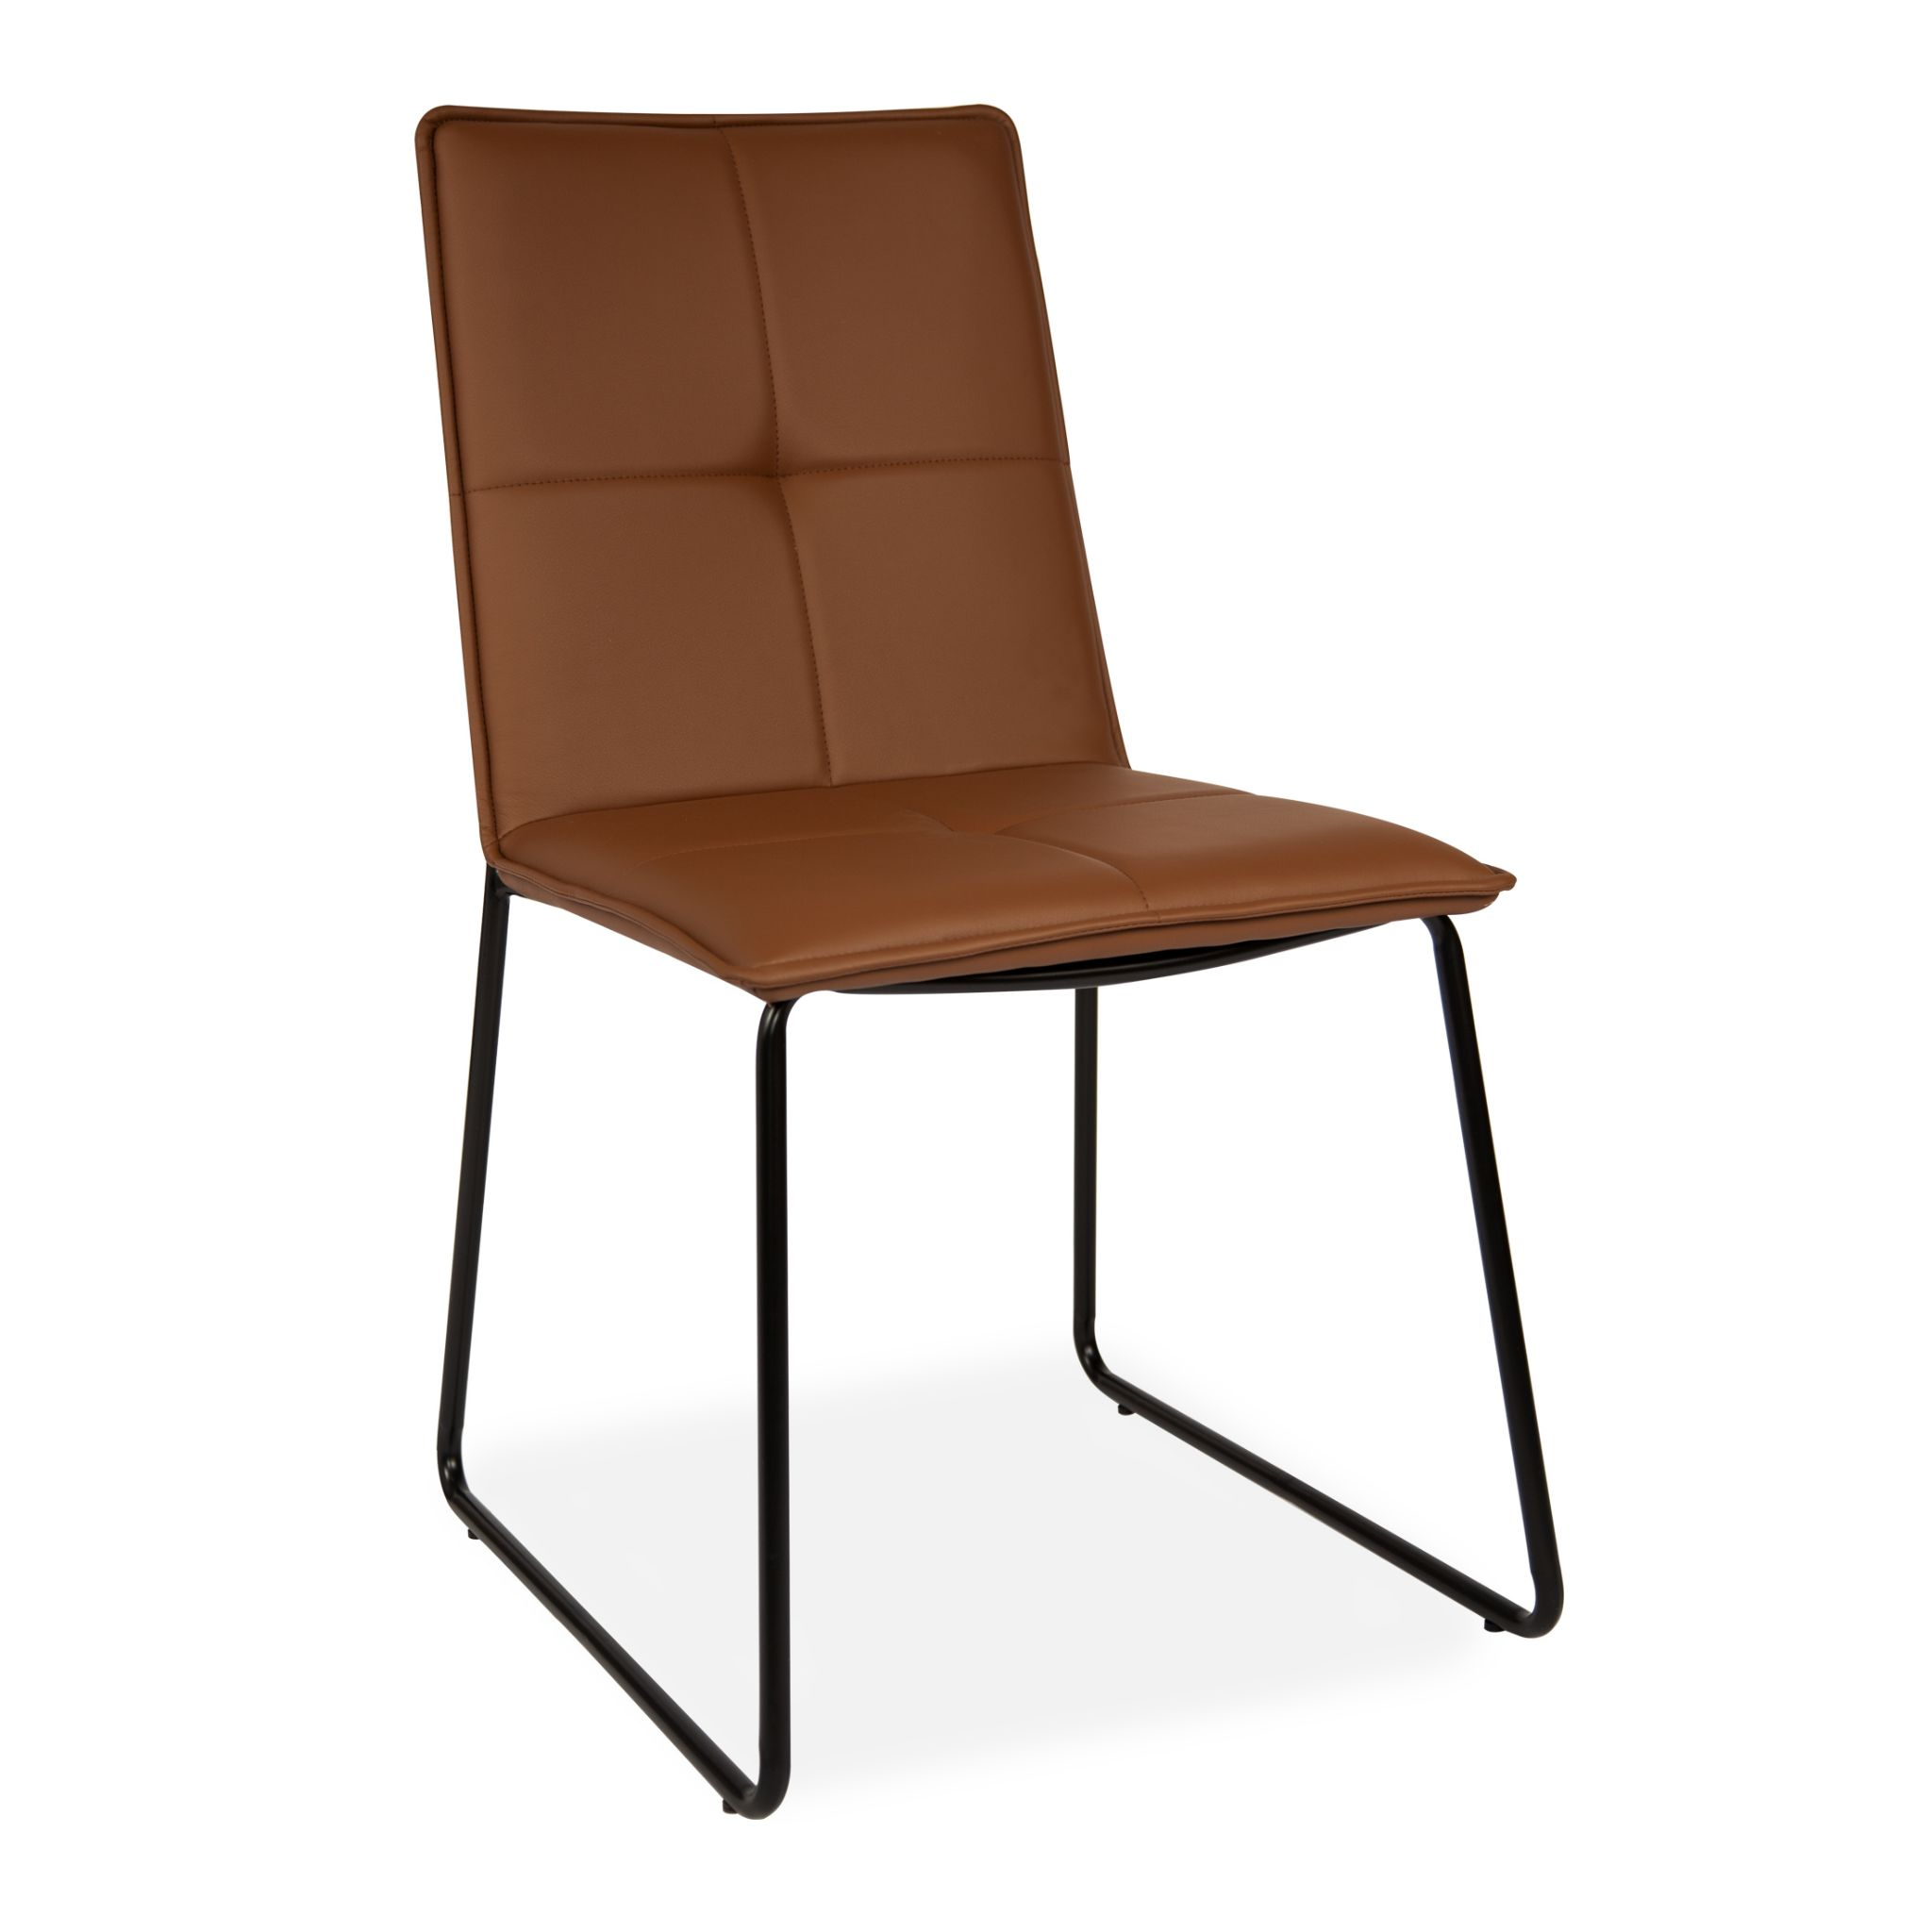 X2 Modern Brown Pu Leather Dining Chairs With Black Legs